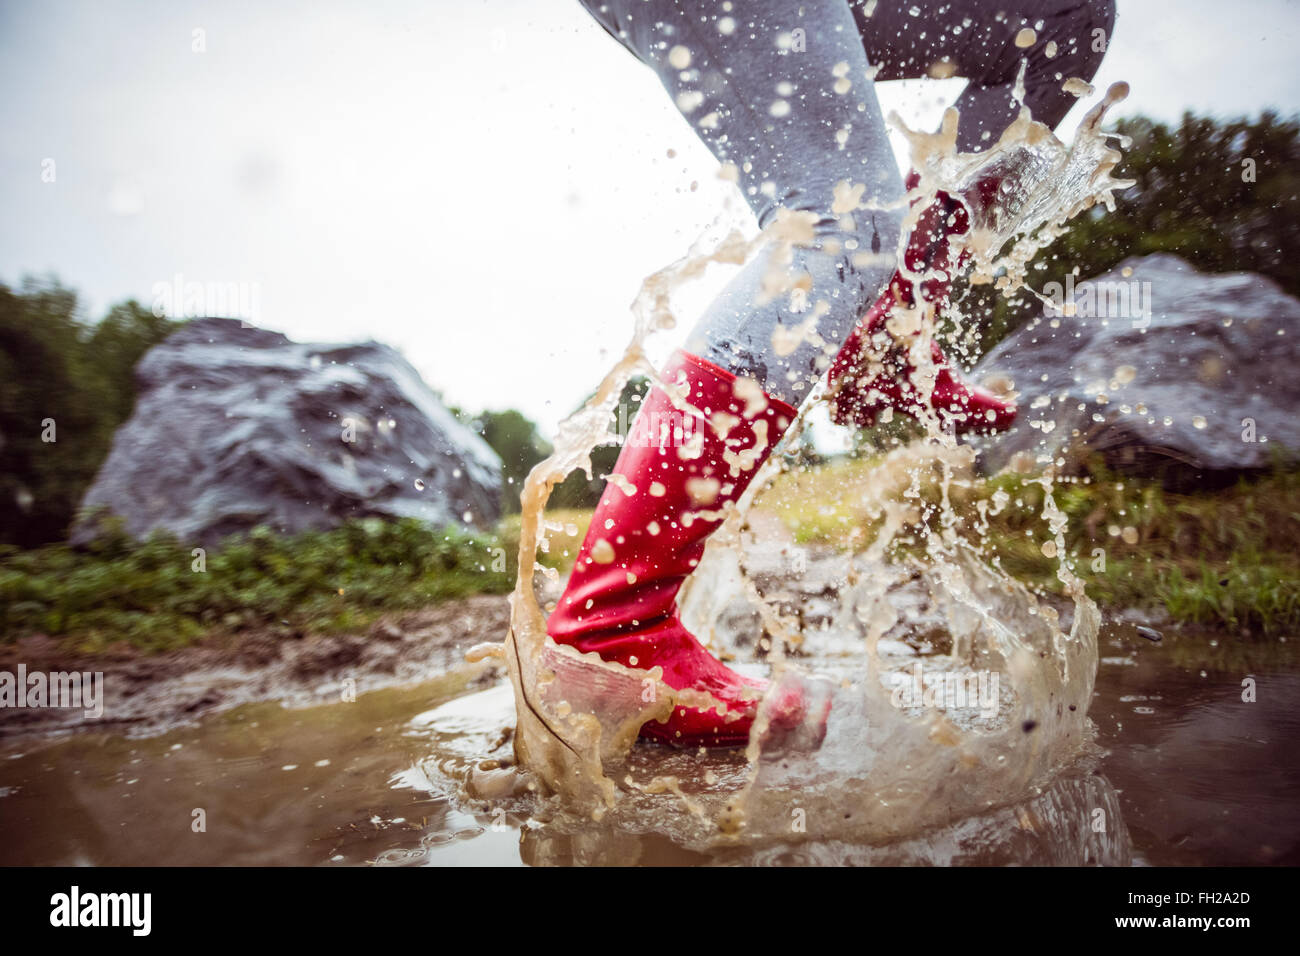 En flaques boueuses Woman splashing Photo Stock